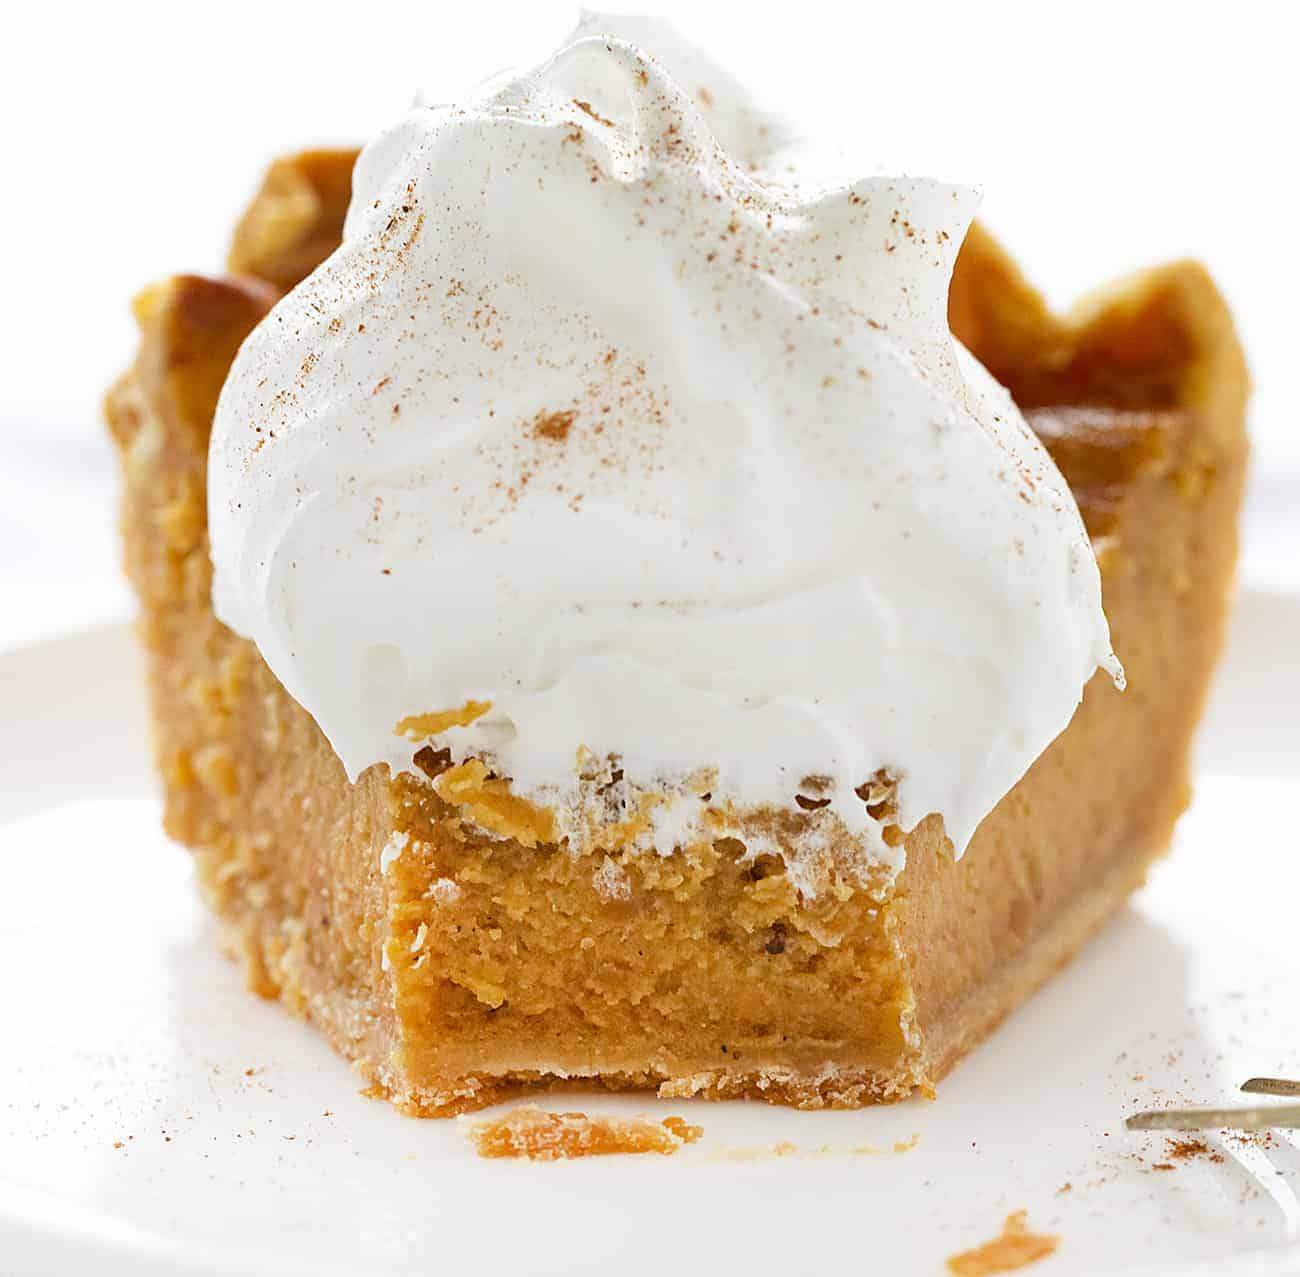 Bite Taken Out of Sweet Potato Pie with Whipped Cream on Top